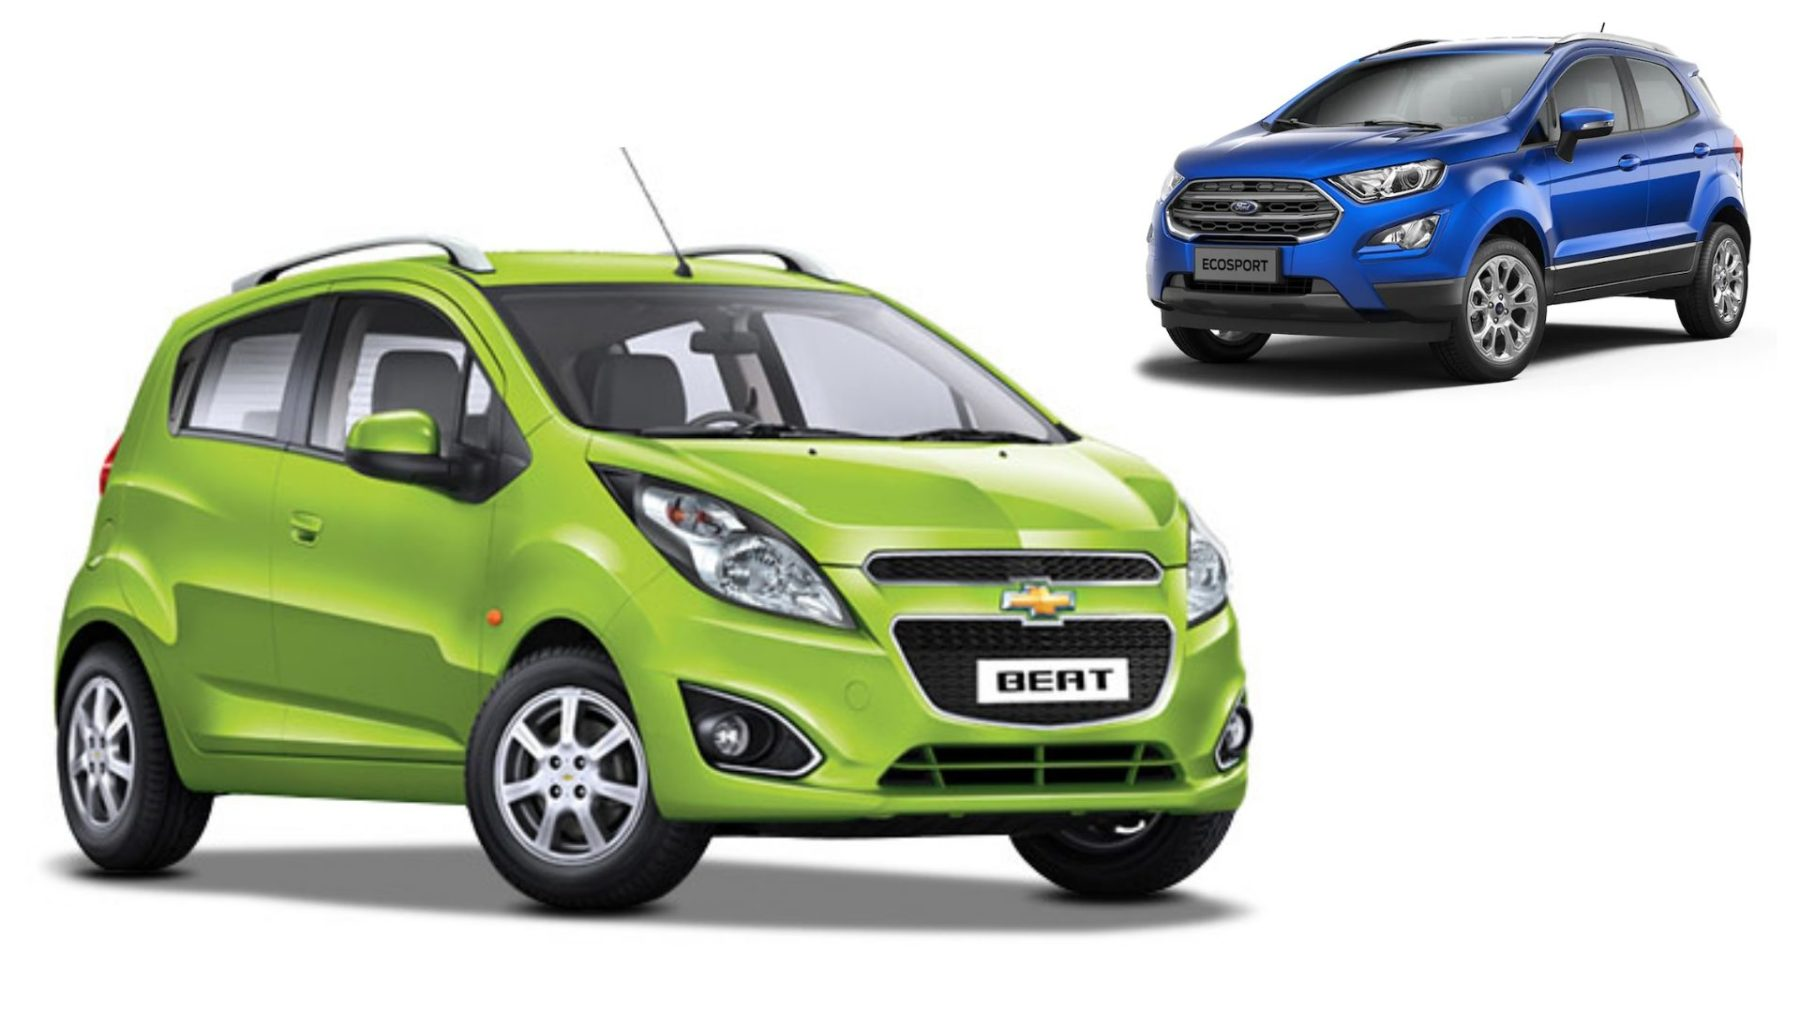 Top 10 Most Exported Cars From India In Jan 2020 Chevrolet Beat On Top